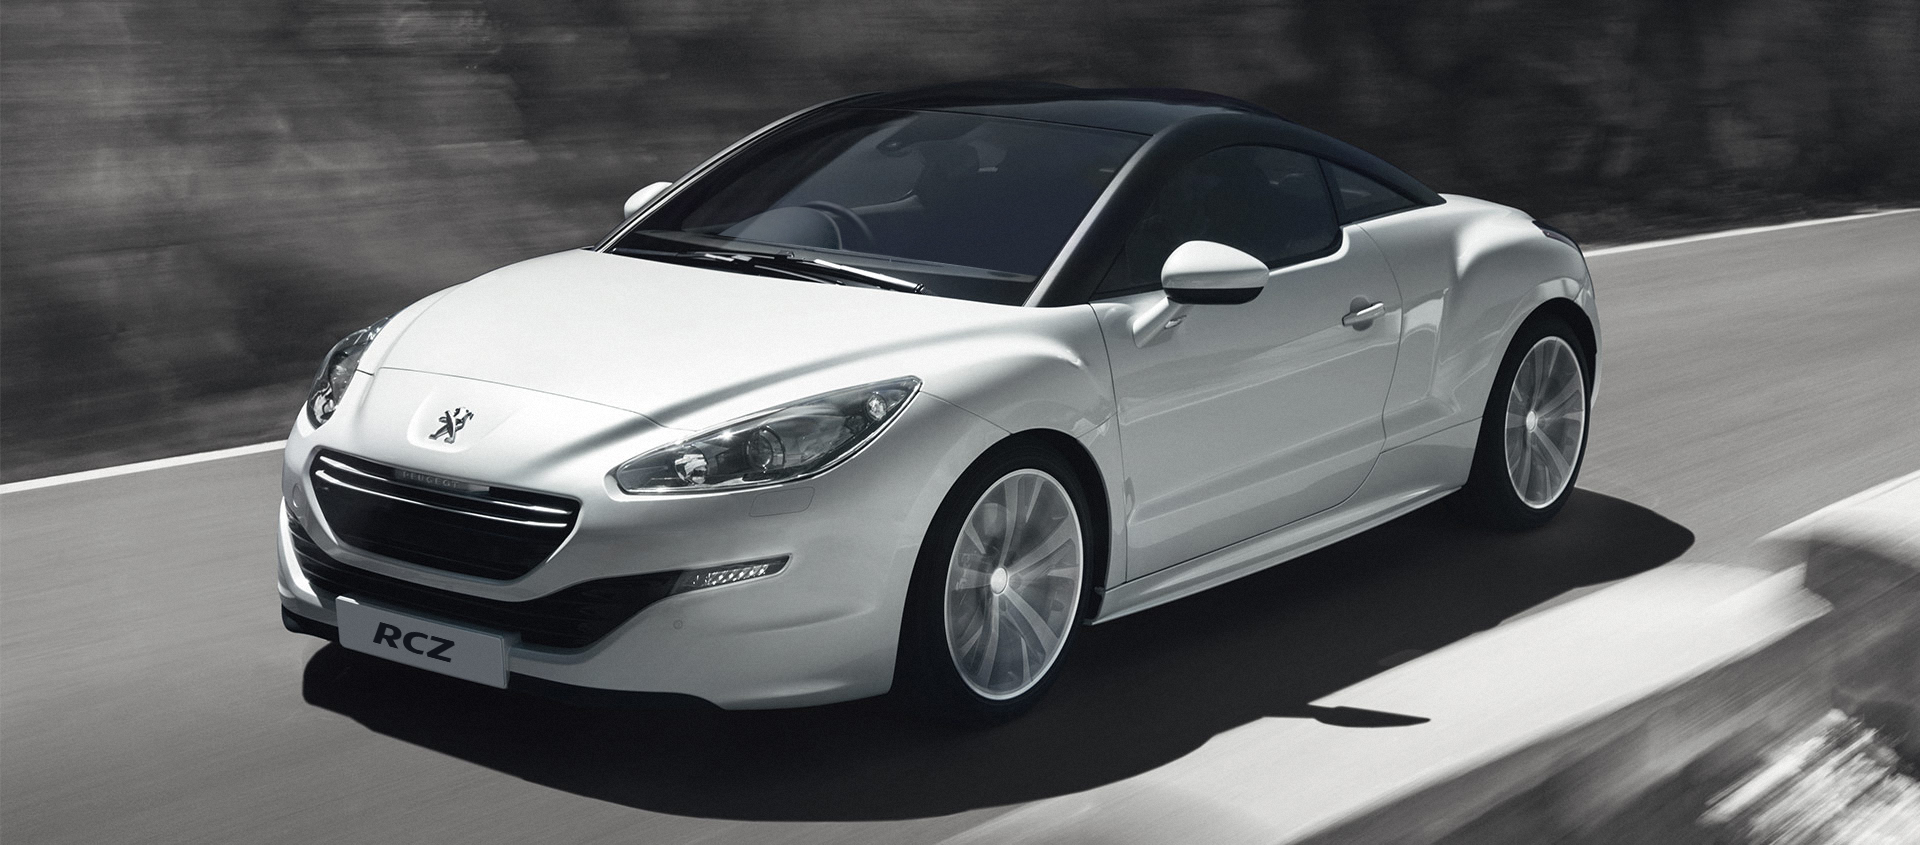 2018 peugeot rcz coupe car photos catalog 2018. Black Bedroom Furniture Sets. Home Design Ideas